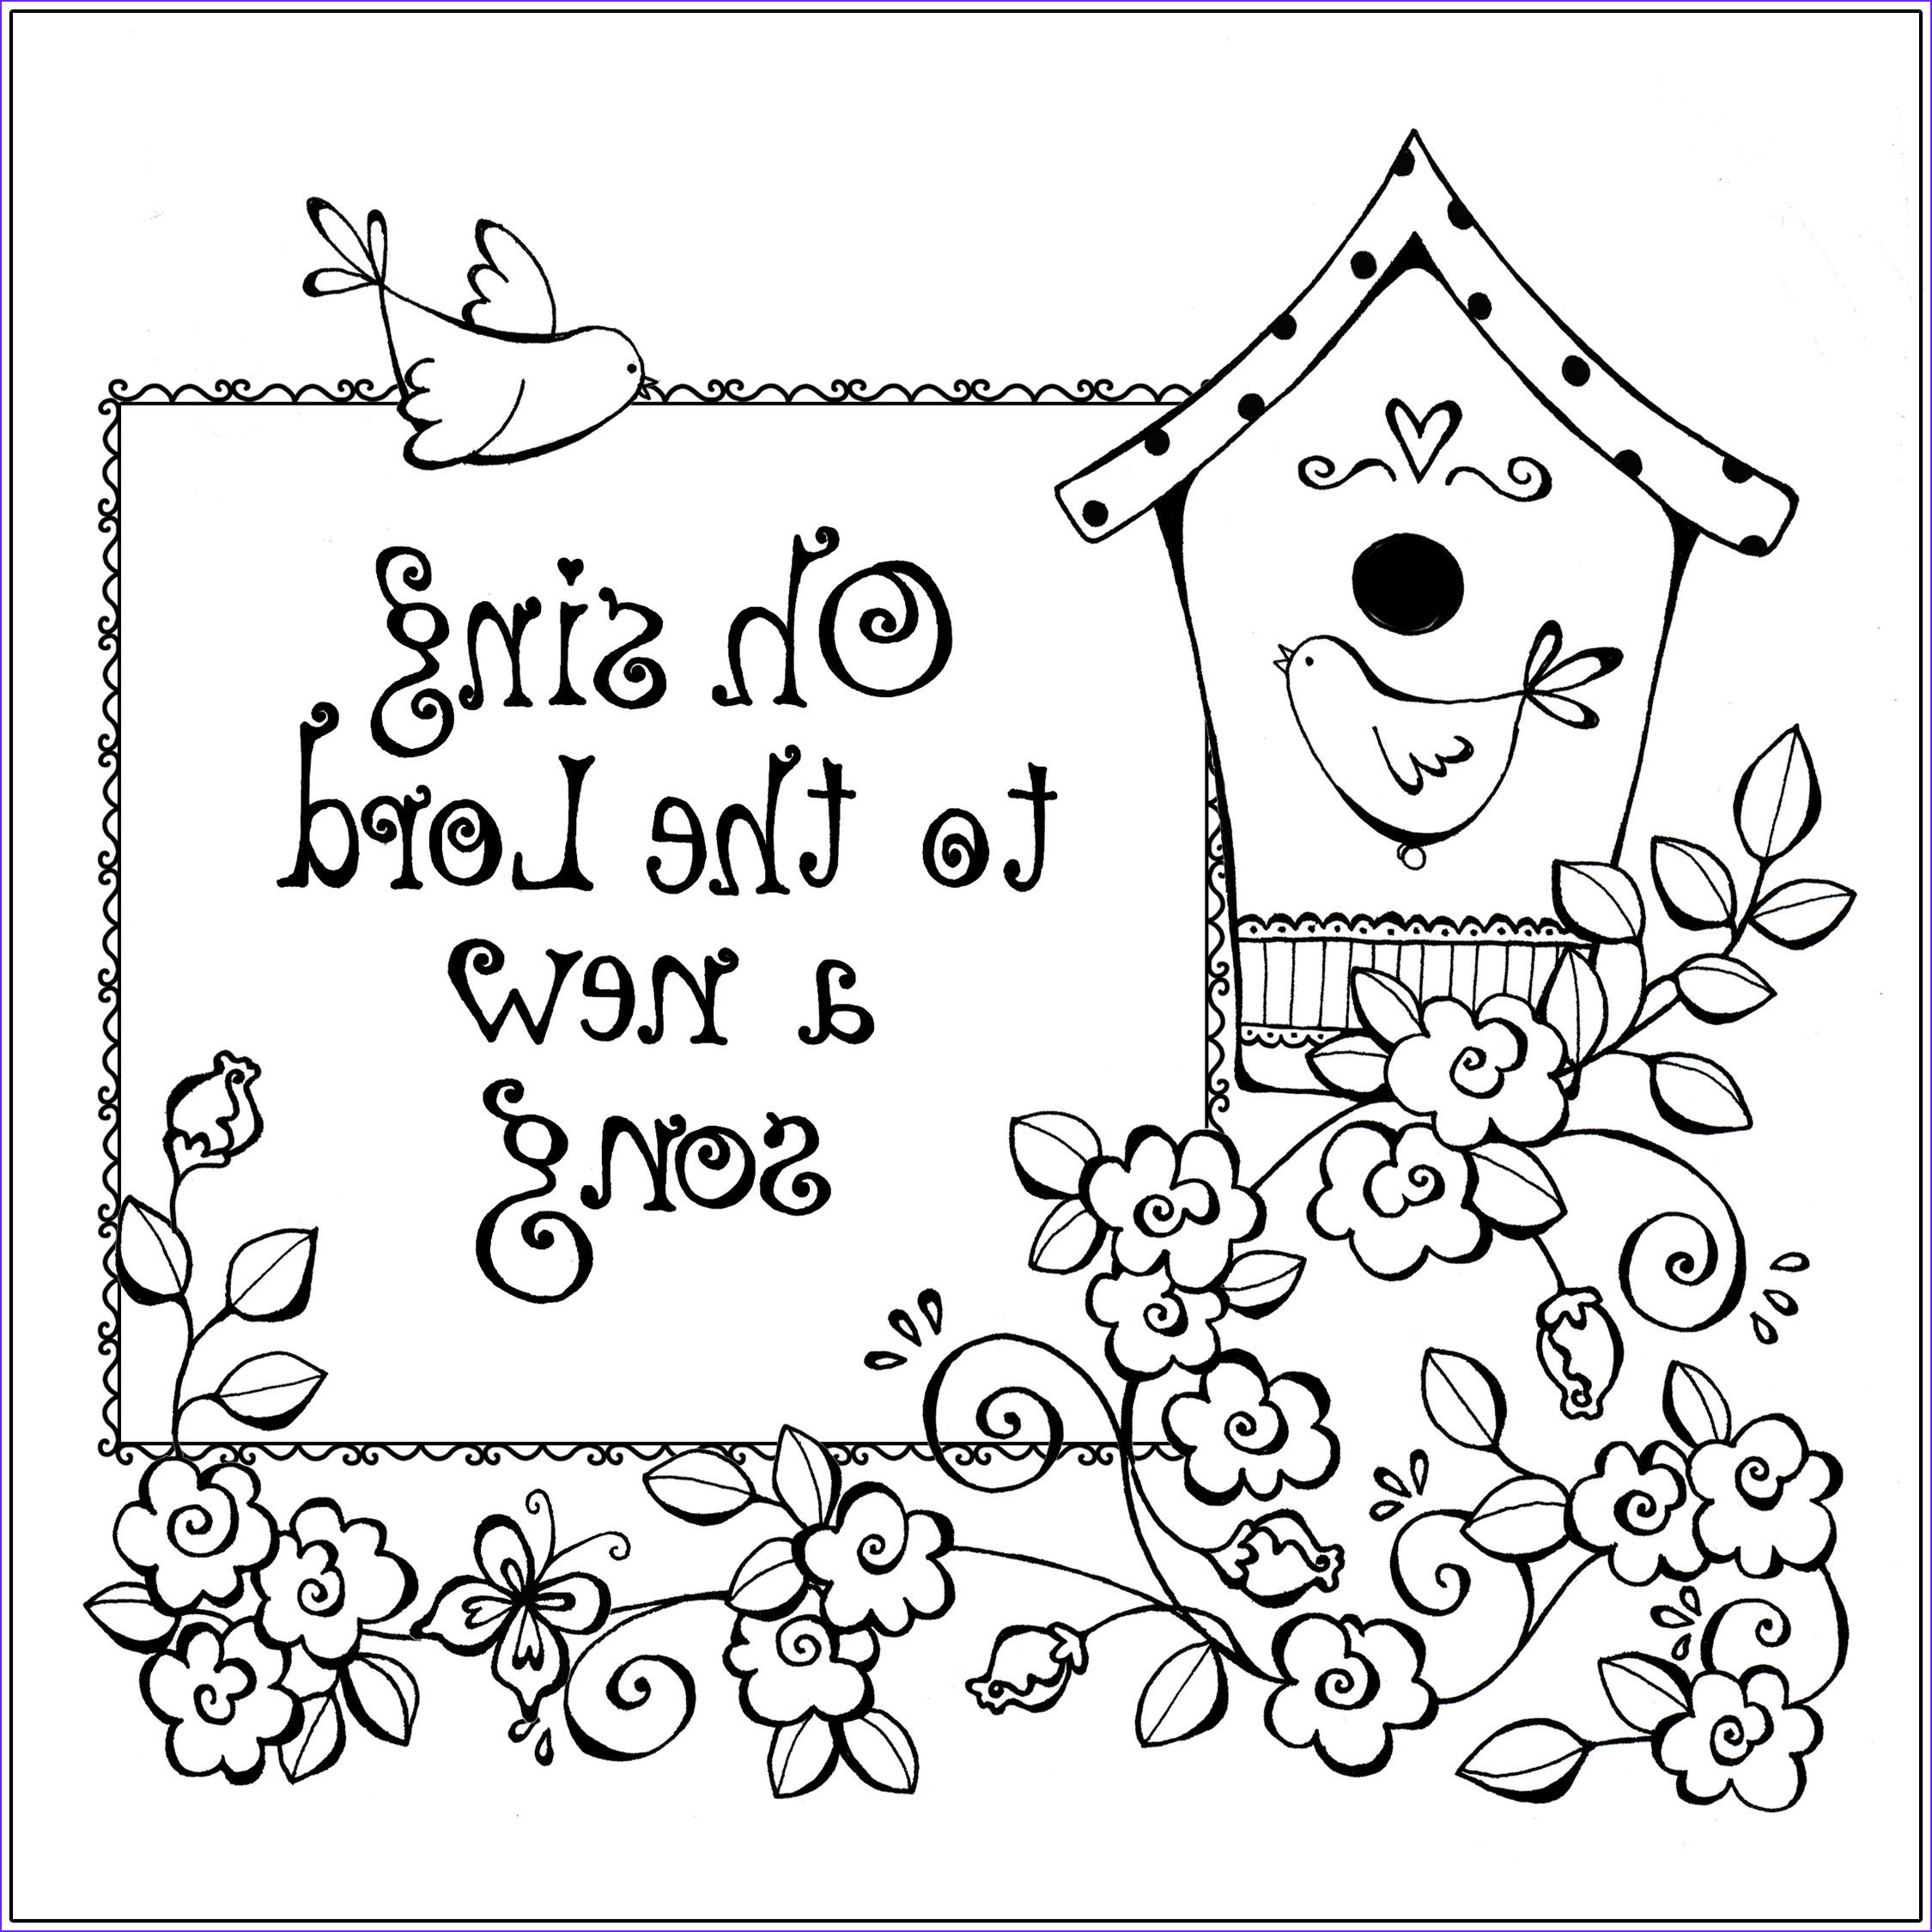 Bible Verse Coloring Pages Free Cool Photos Free Printable Christian Coloring Pages for Kids Best